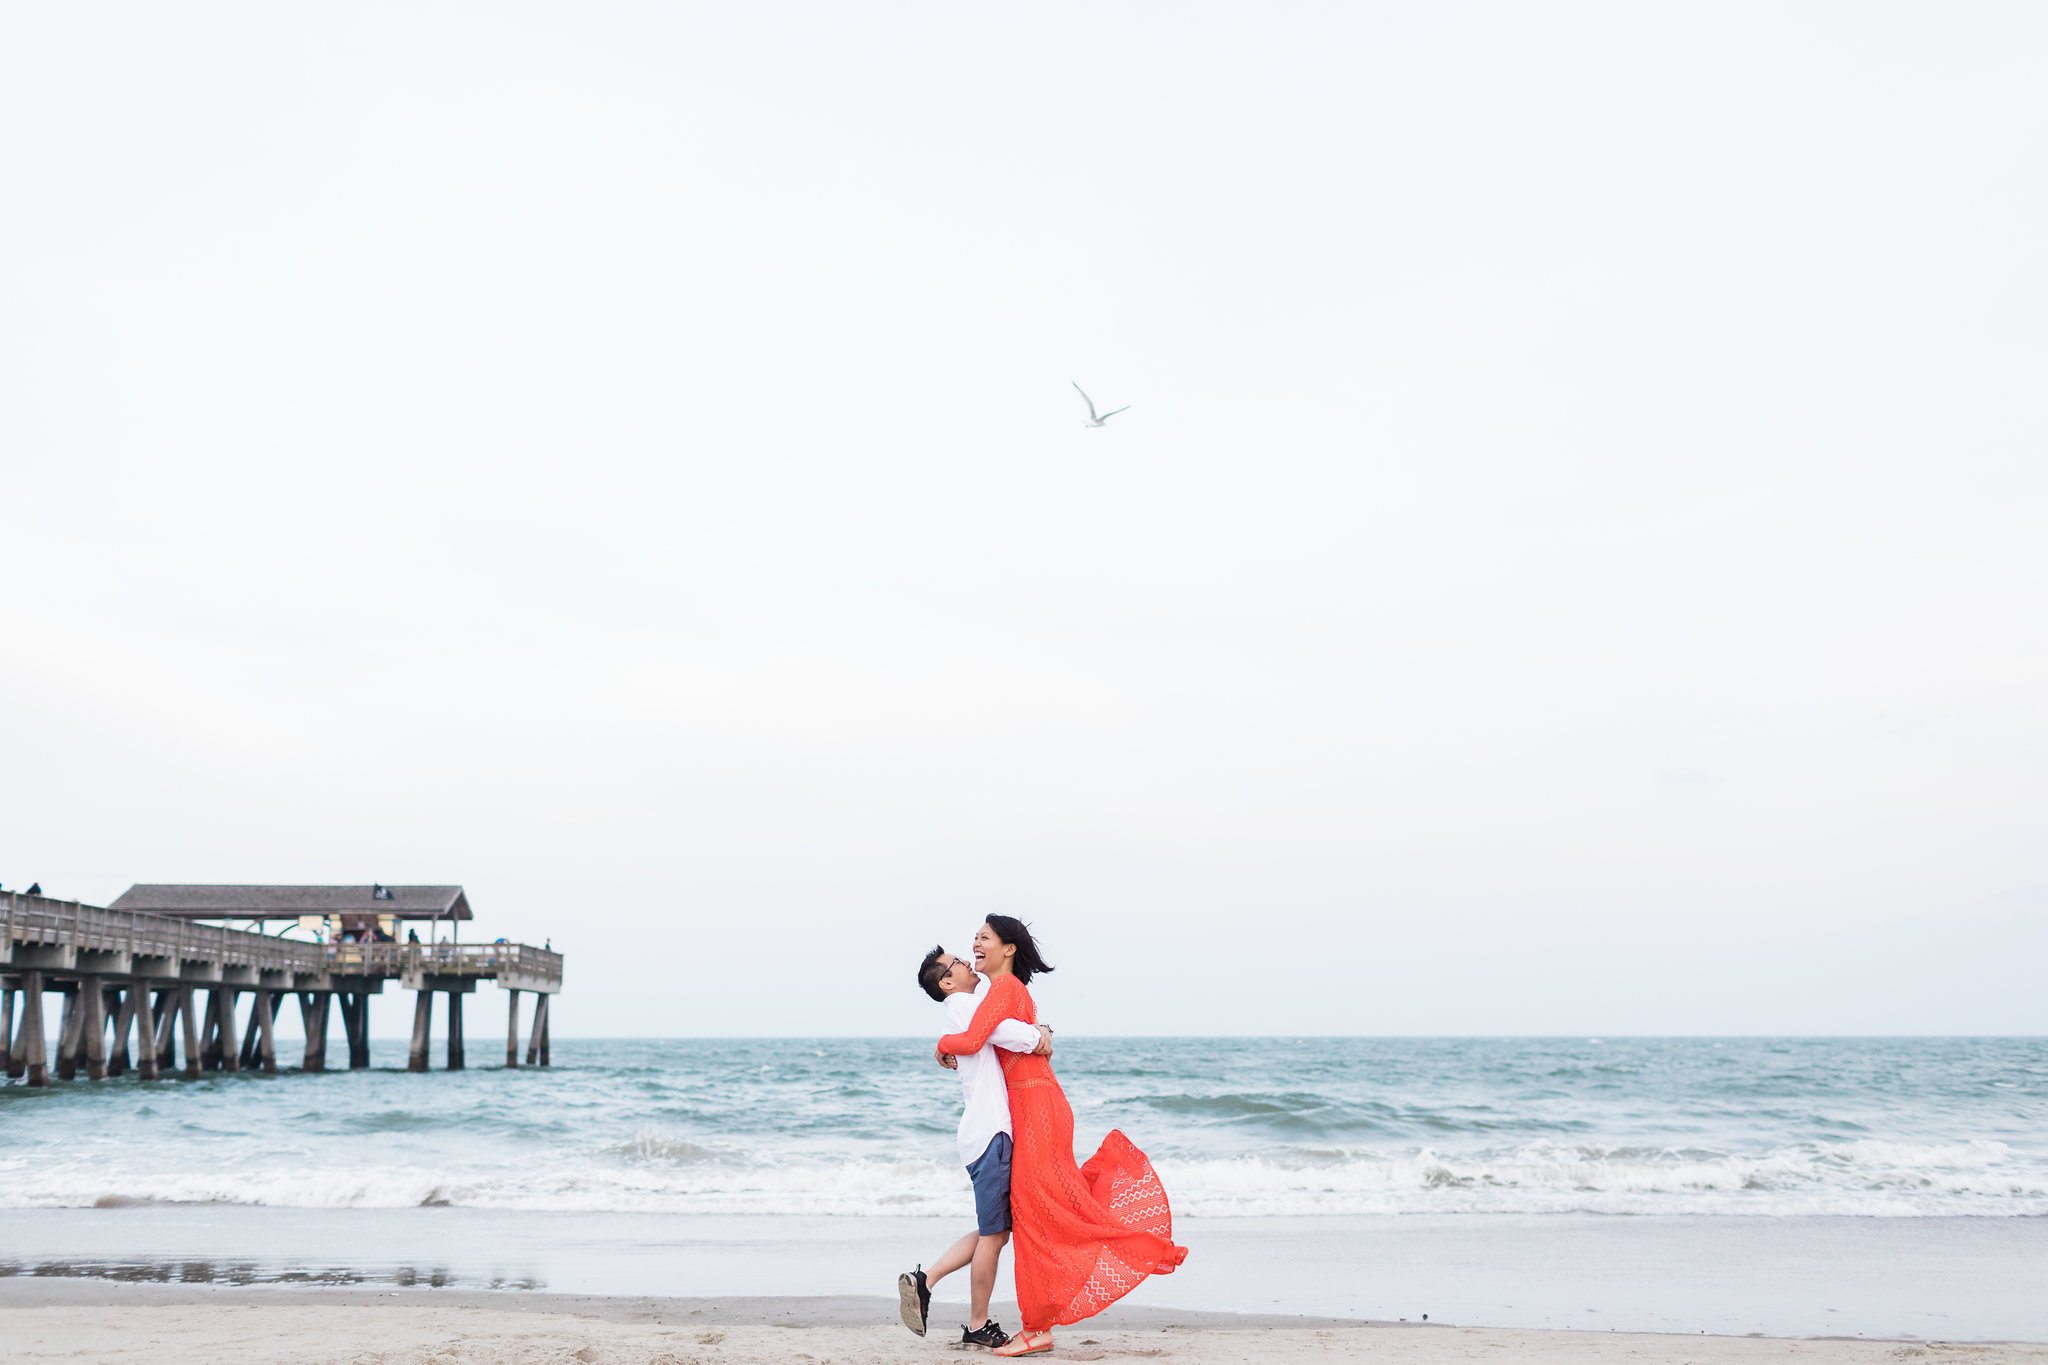 Suzanne + Gordon - Tybee Island and Savannah Engagement | Apt. B Photography